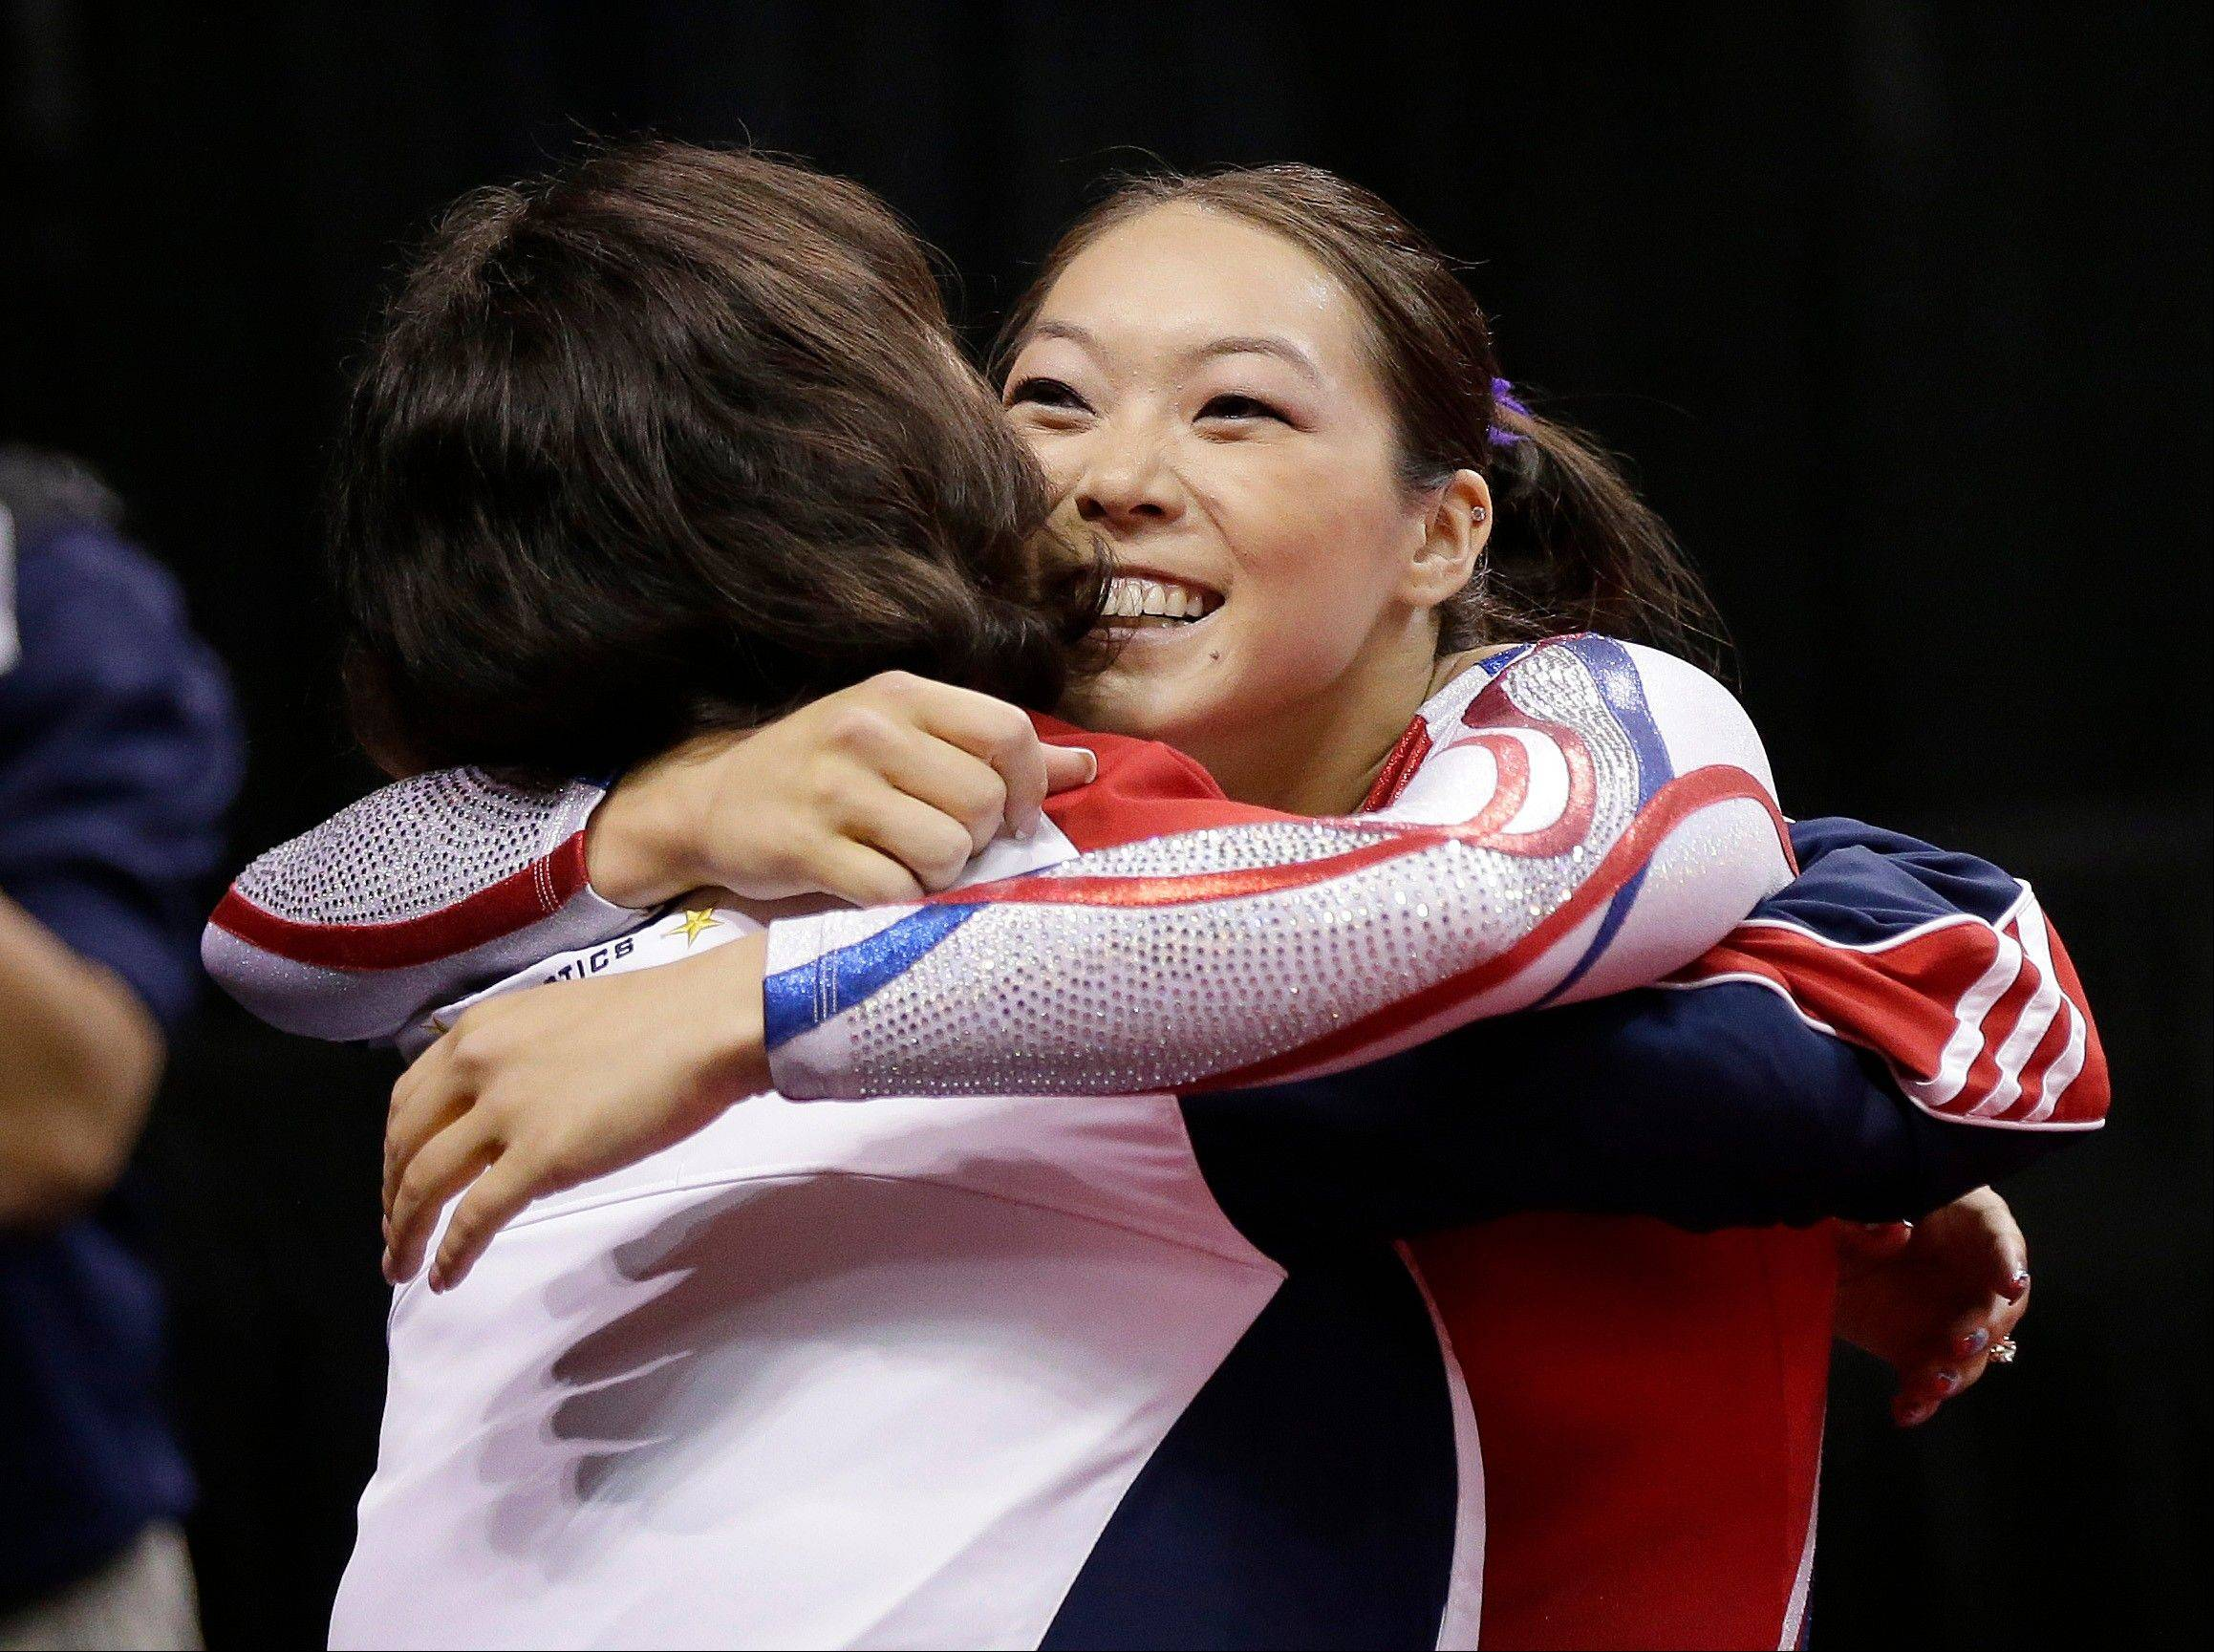 Anna Li hugs her coach after competing on the balance beam during the final round of the women's Olympic gymnastics trials, Sunday, July 1, 2012, in San Jose, Calif. Li was named as an alternate to the U.S. Olympic gymnastics team.